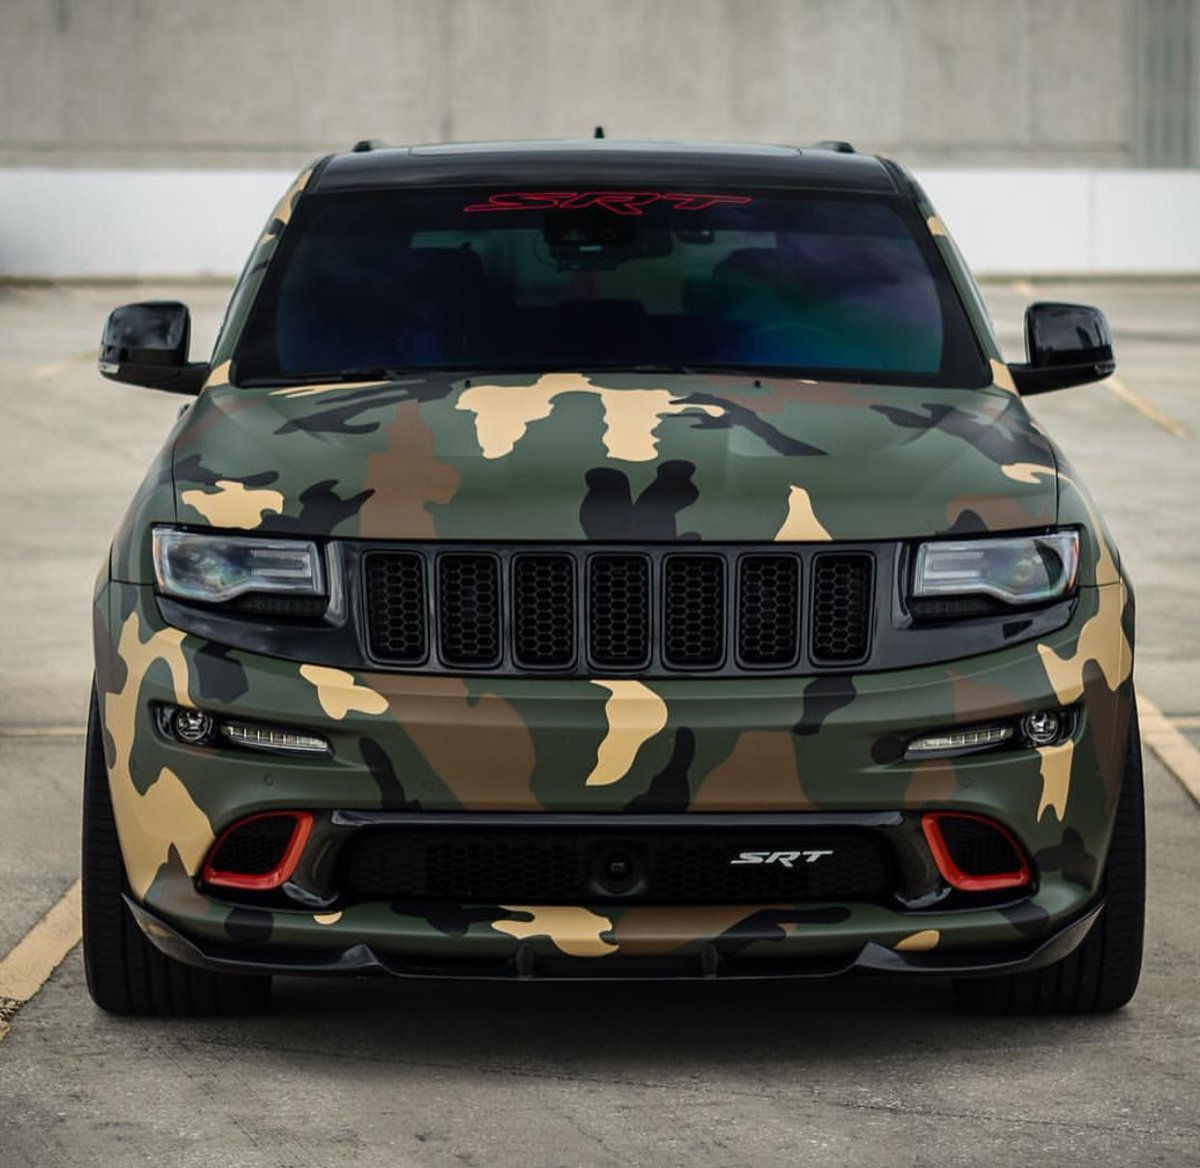 "TORQ ARMY On Twitter: ""🌱Camo Jeep SRT8 🌱 ・・・ #Jeep #SRT"